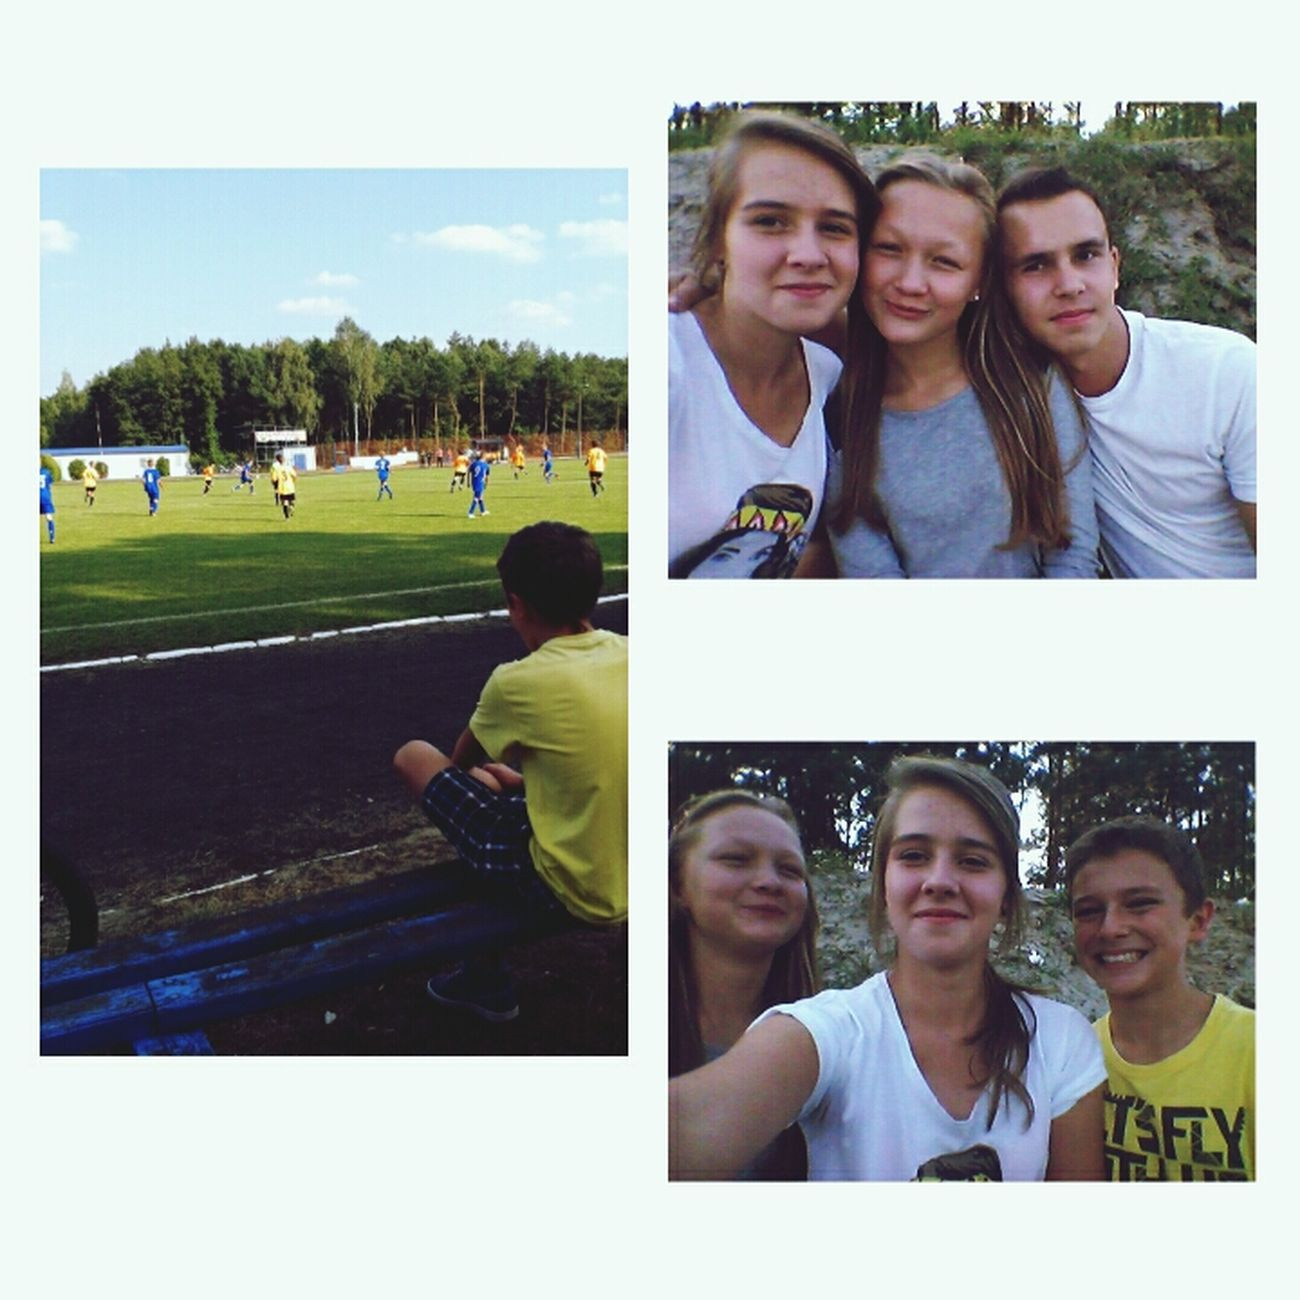 Soccer Match Funn!=) Relaxing Goal! remiss